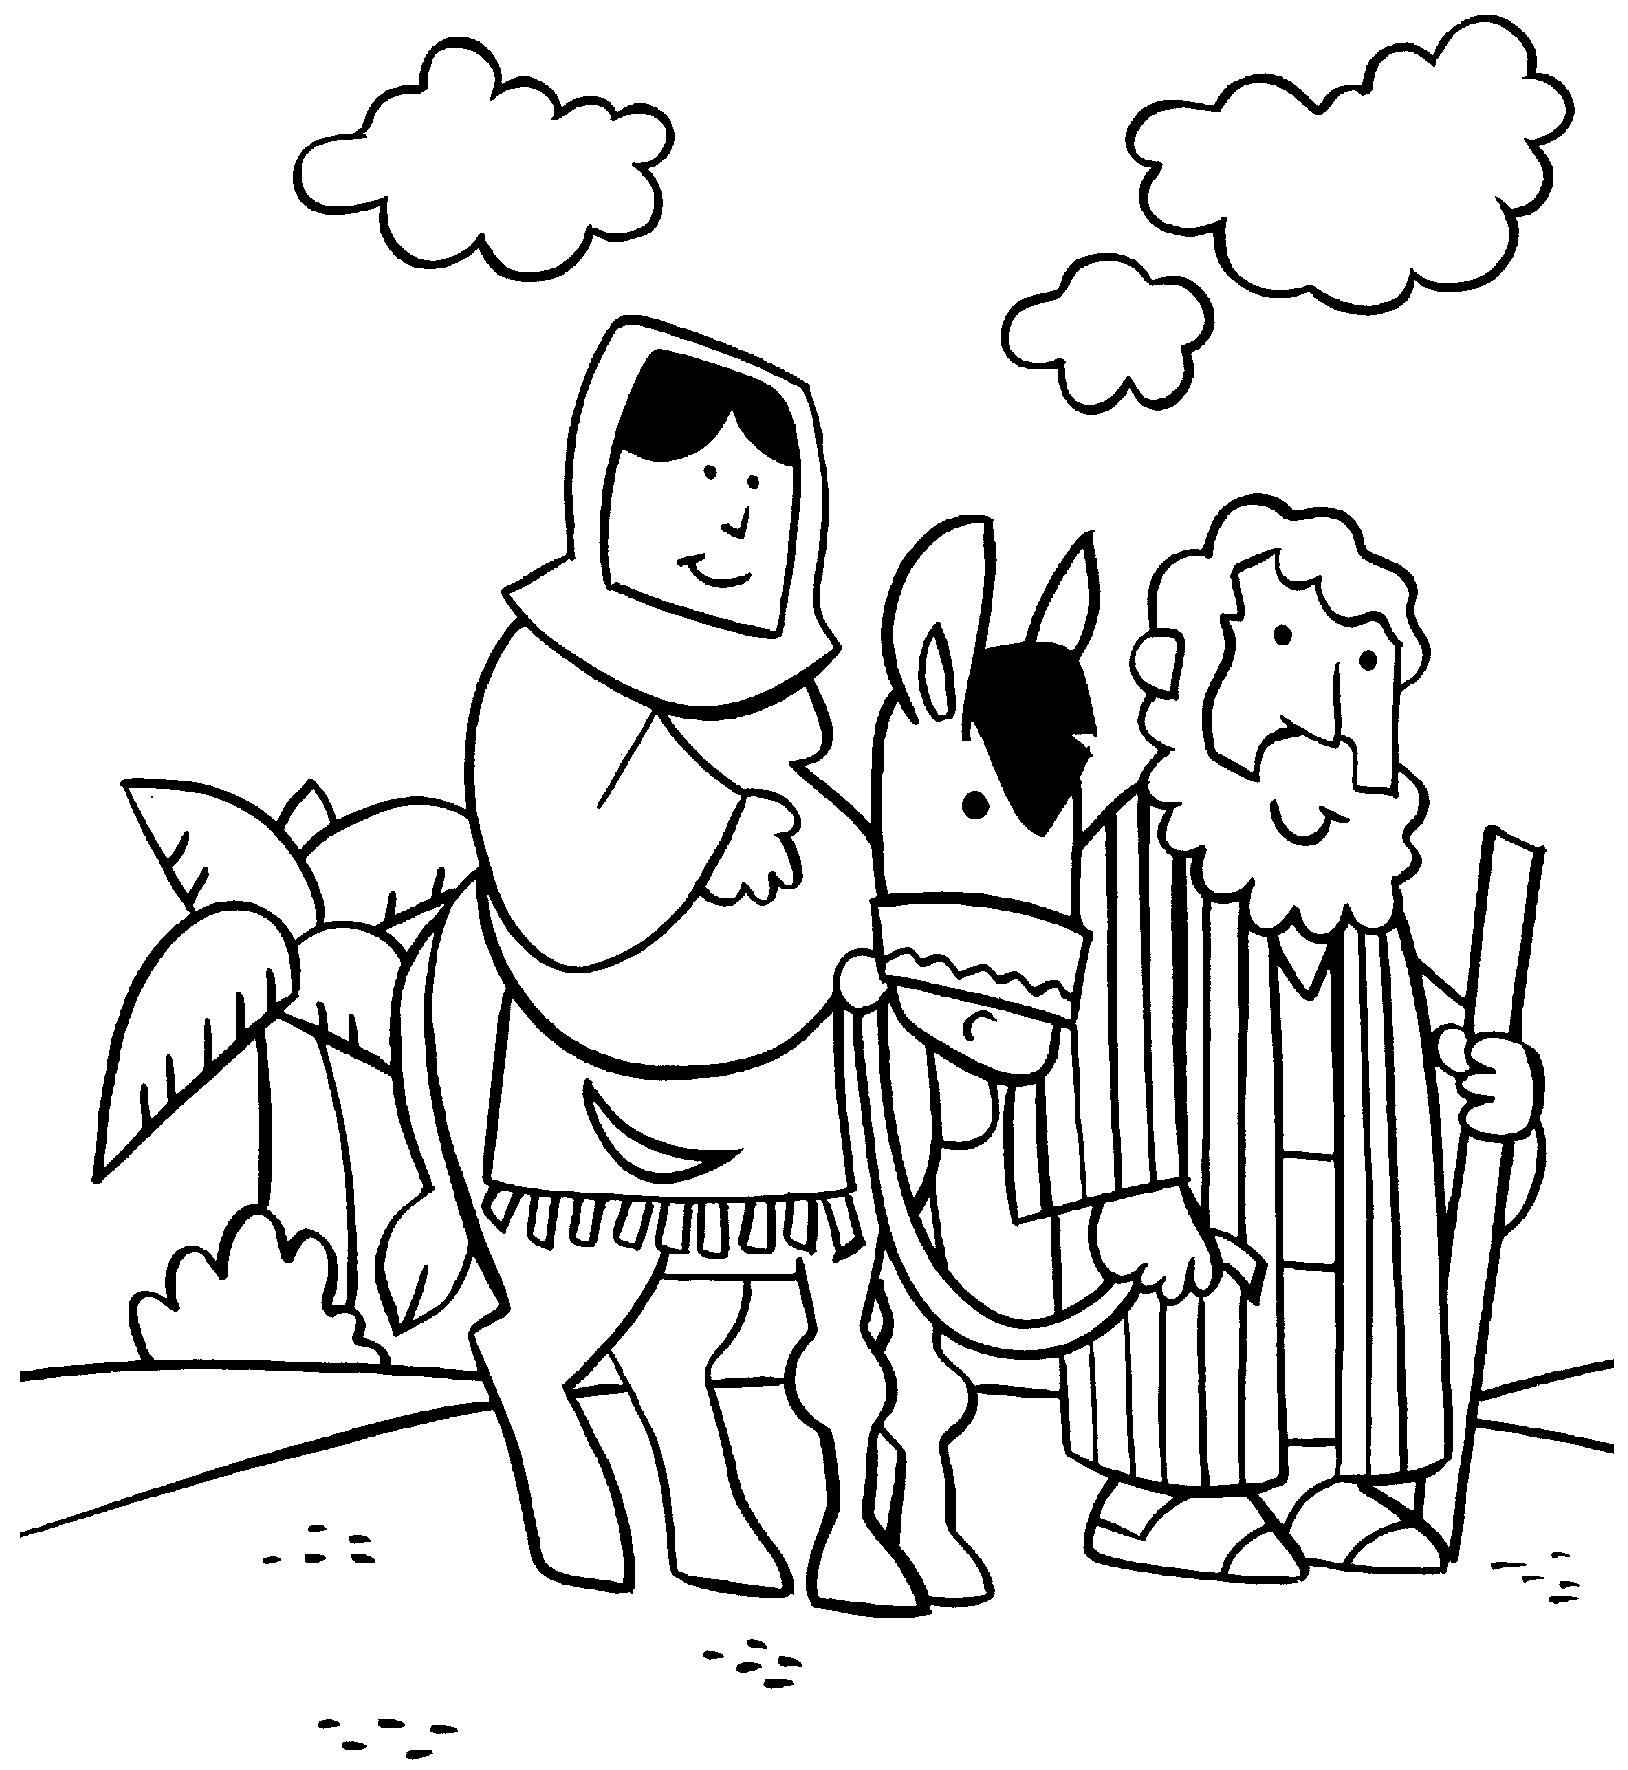 Coloring sheet mary and joseph bethlehem - Coloring Sheet Mary And Joseph Bethlehem 19